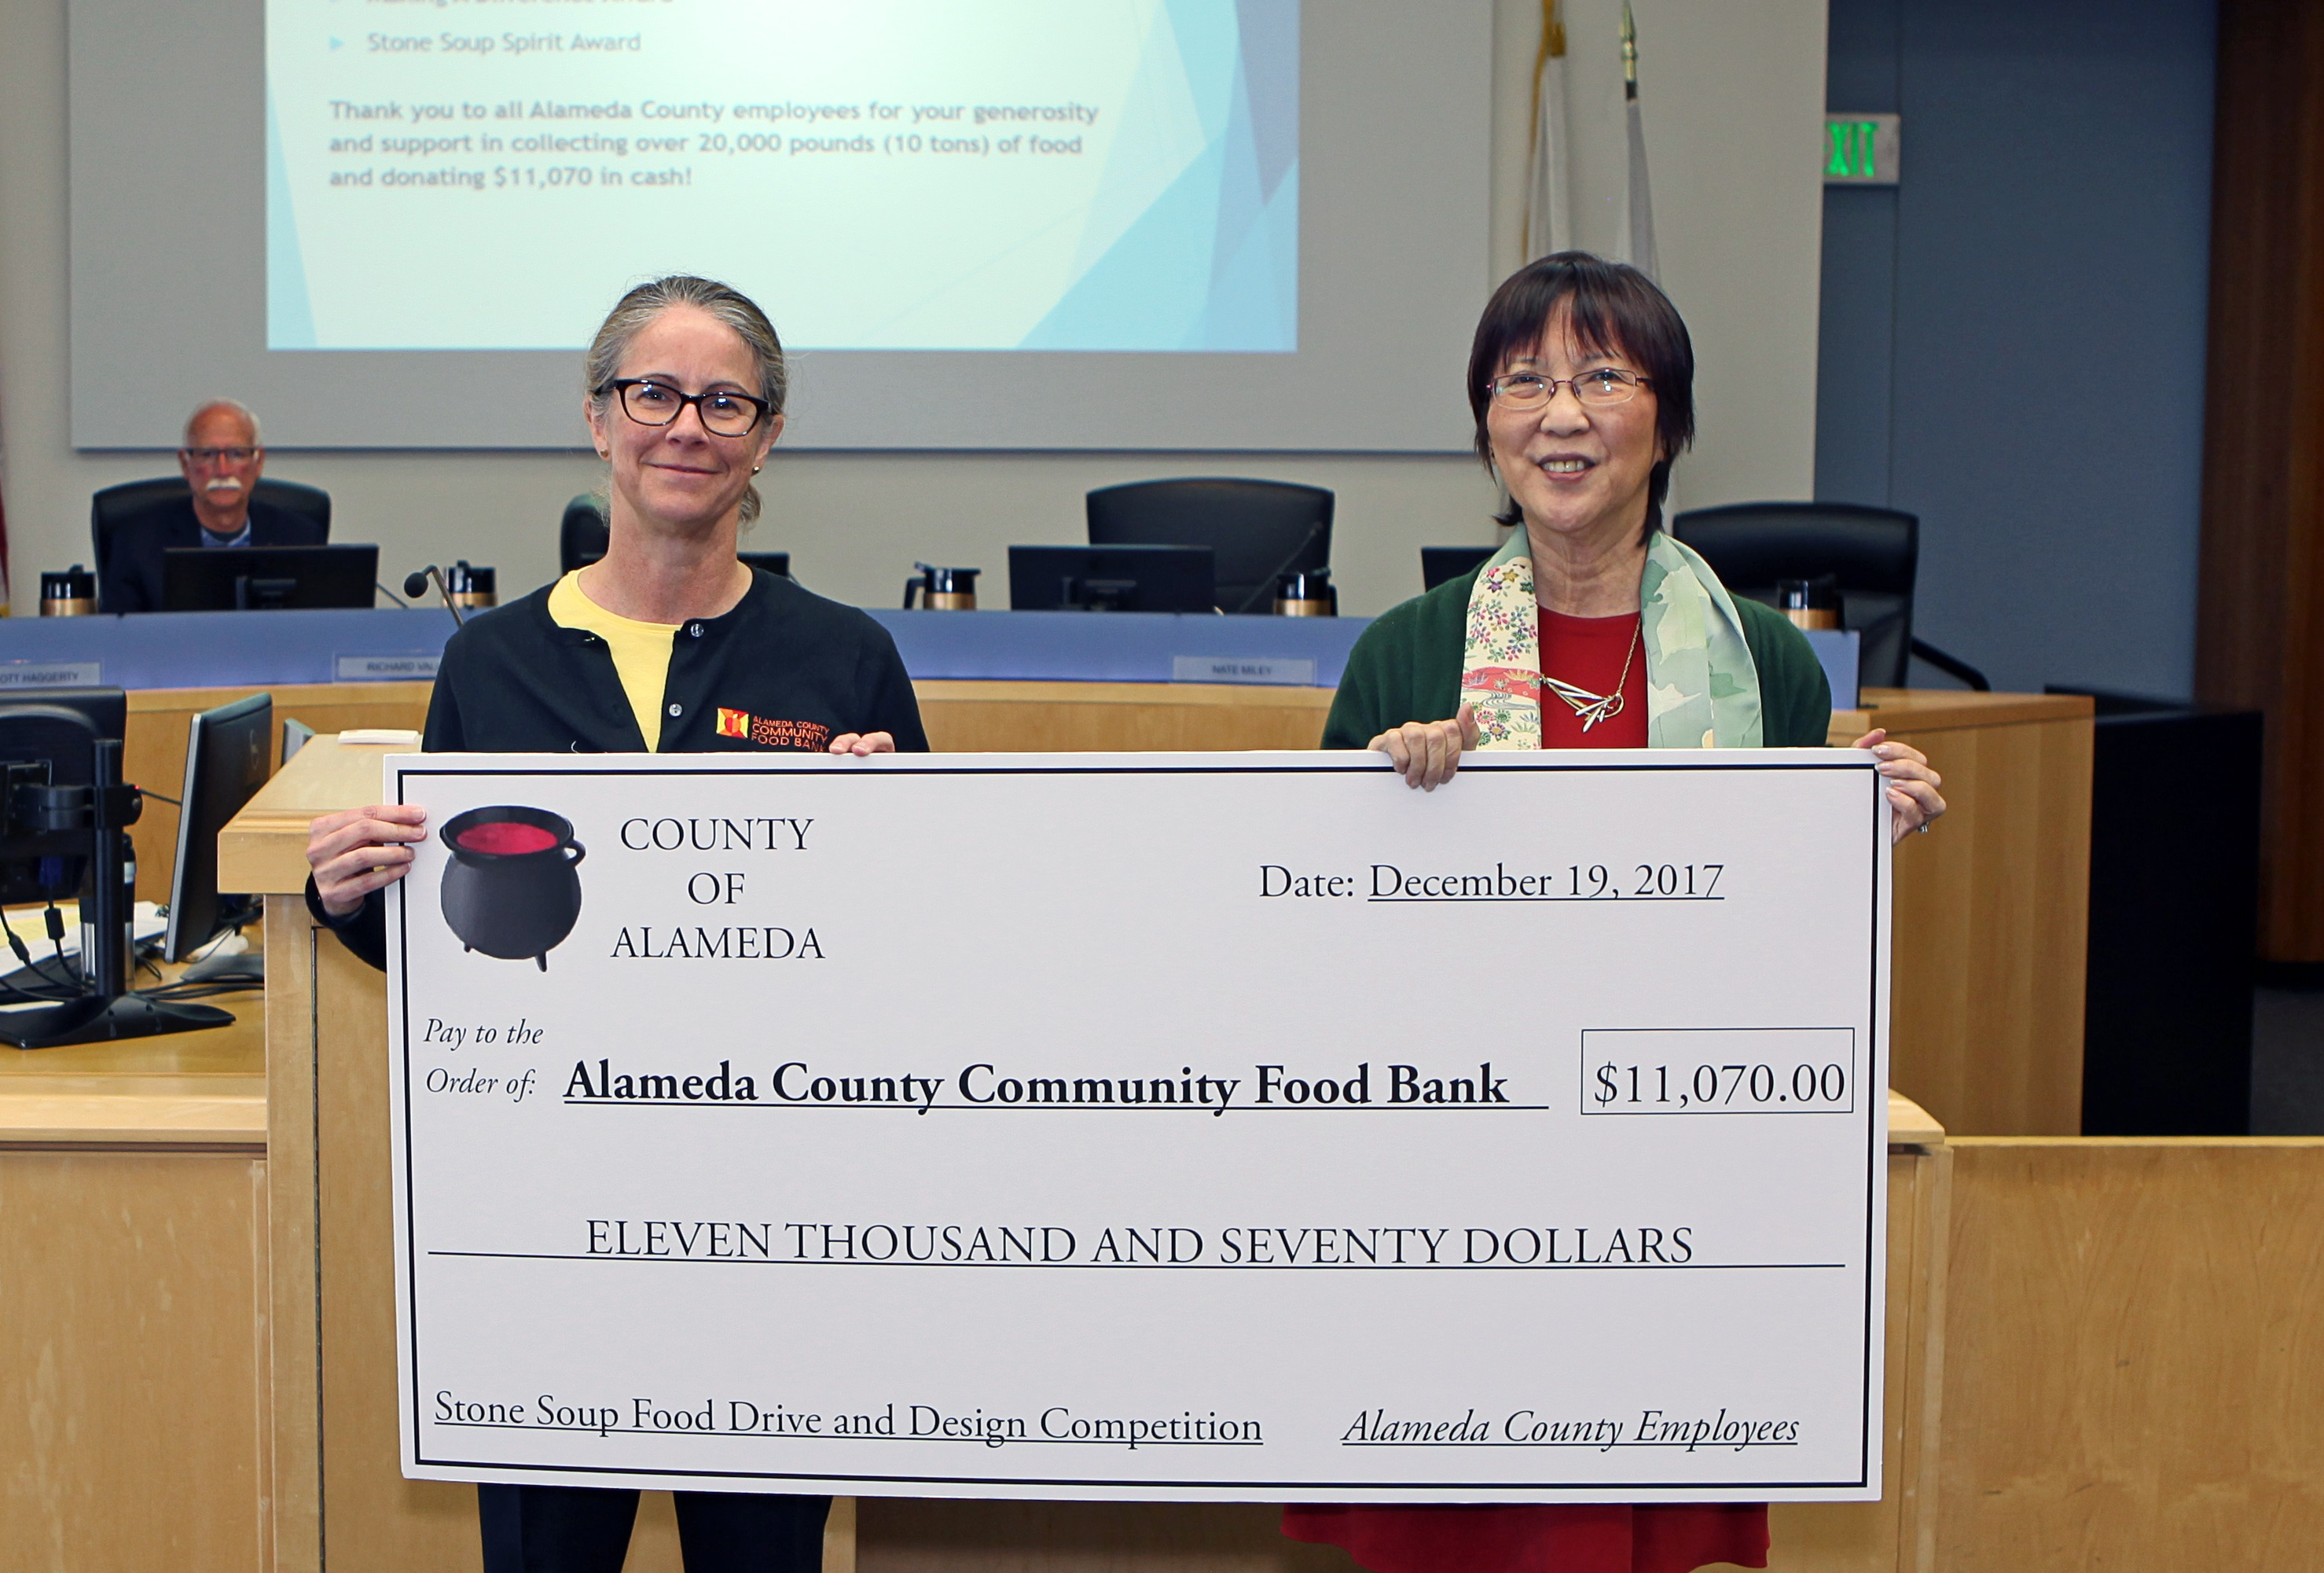 Supervisor Wilma Chan presented Alameda County Food Bank with $14,000 check today to culminate record-breaking Stone Soup Food Drive.